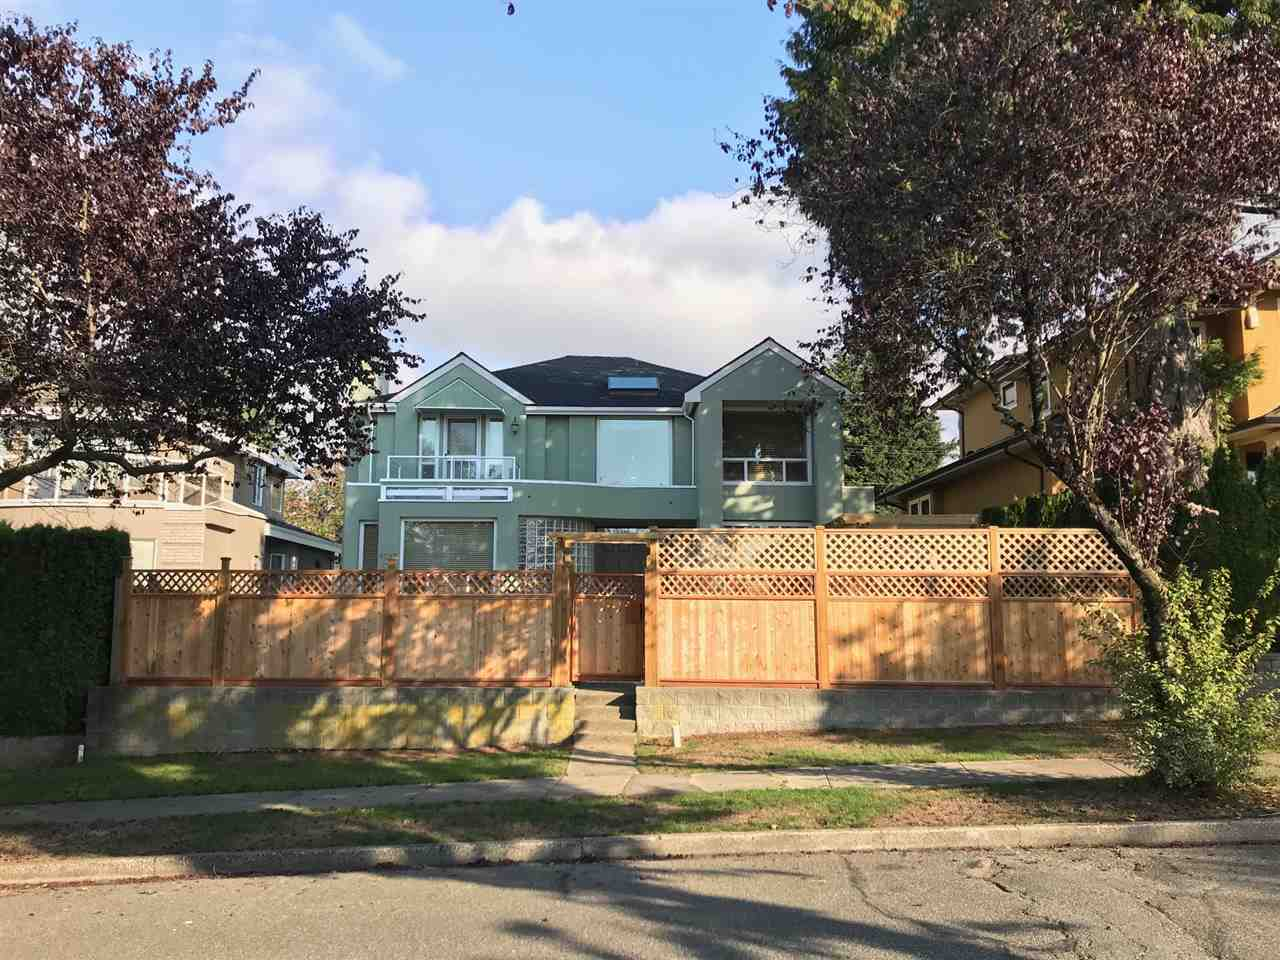 1523 W 59TH AVENUE - South Granville Other for sale, 9 Bedrooms (R2496262)